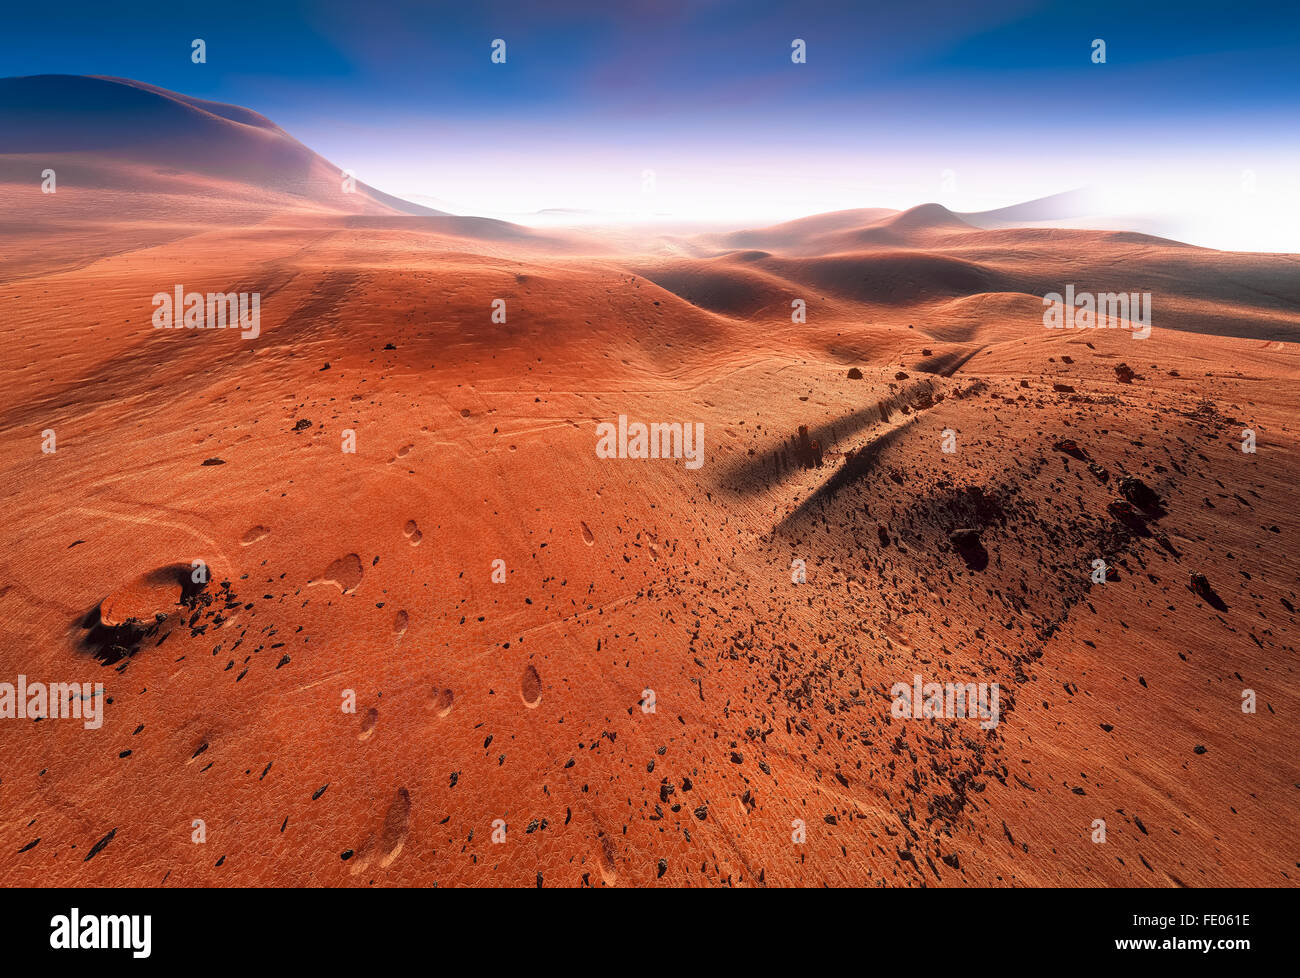 Red surface of planet Mars Stock Photo